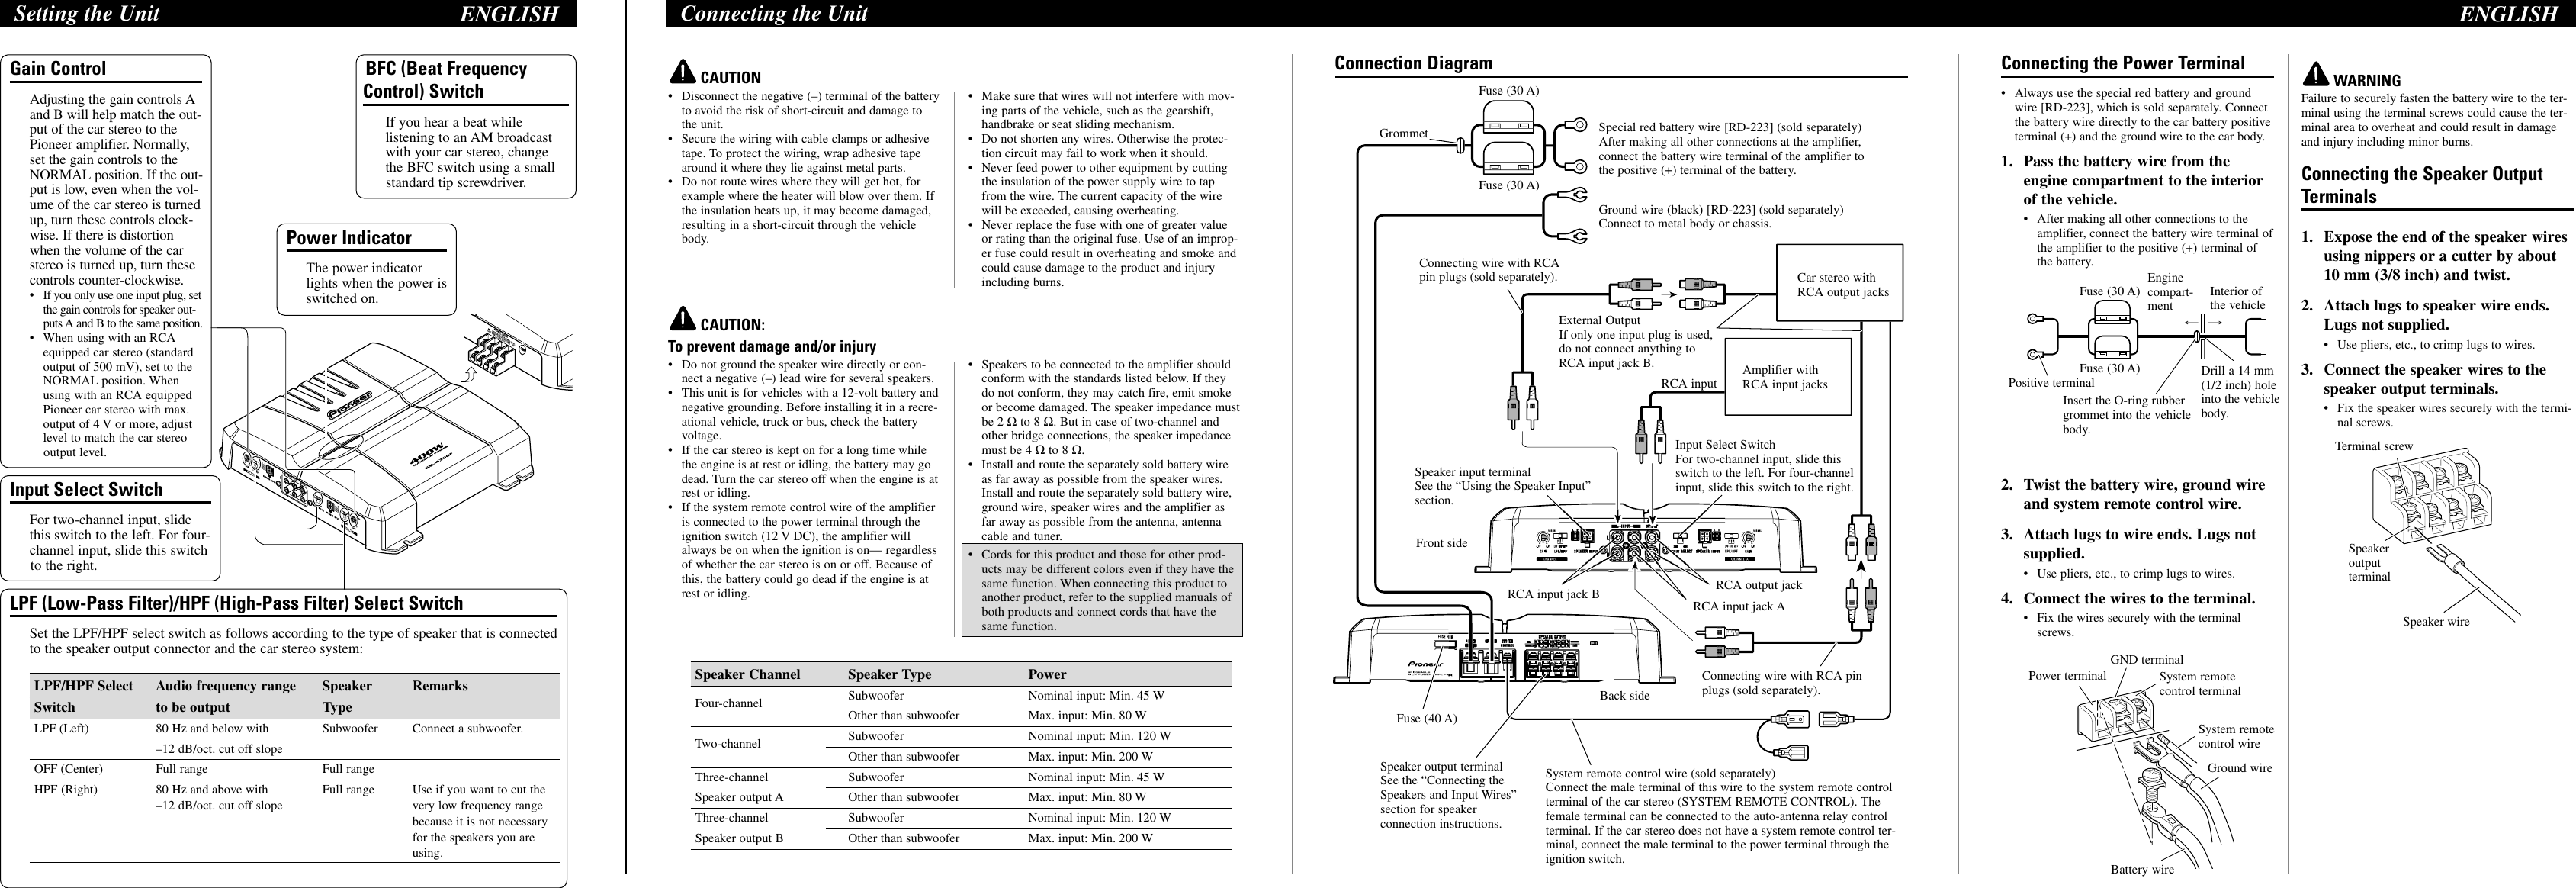 Pioneer Gm 4300f Users Manual Yrd5086 A U Fuse Box Terminal Crimpers Page 2 Of 8